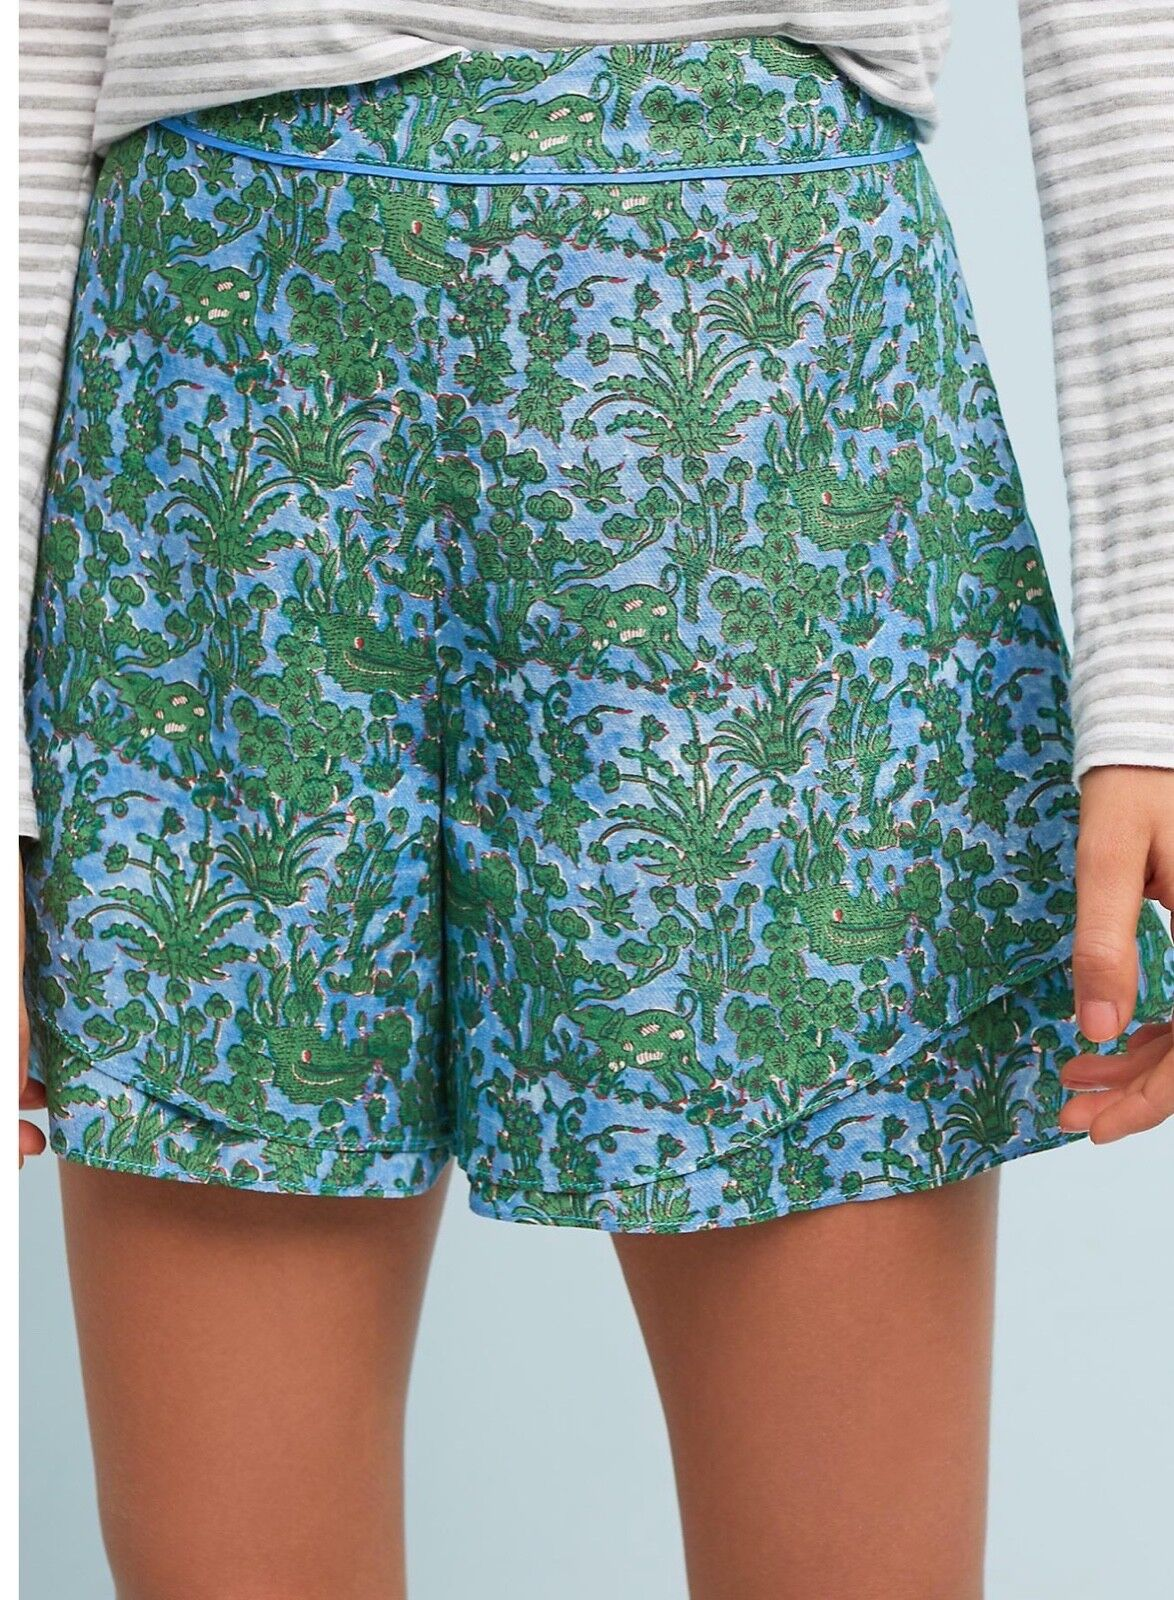 NWT in Bag Anthropologie  78 Simone Tiered Shorts Sz. M-Fast Shipping